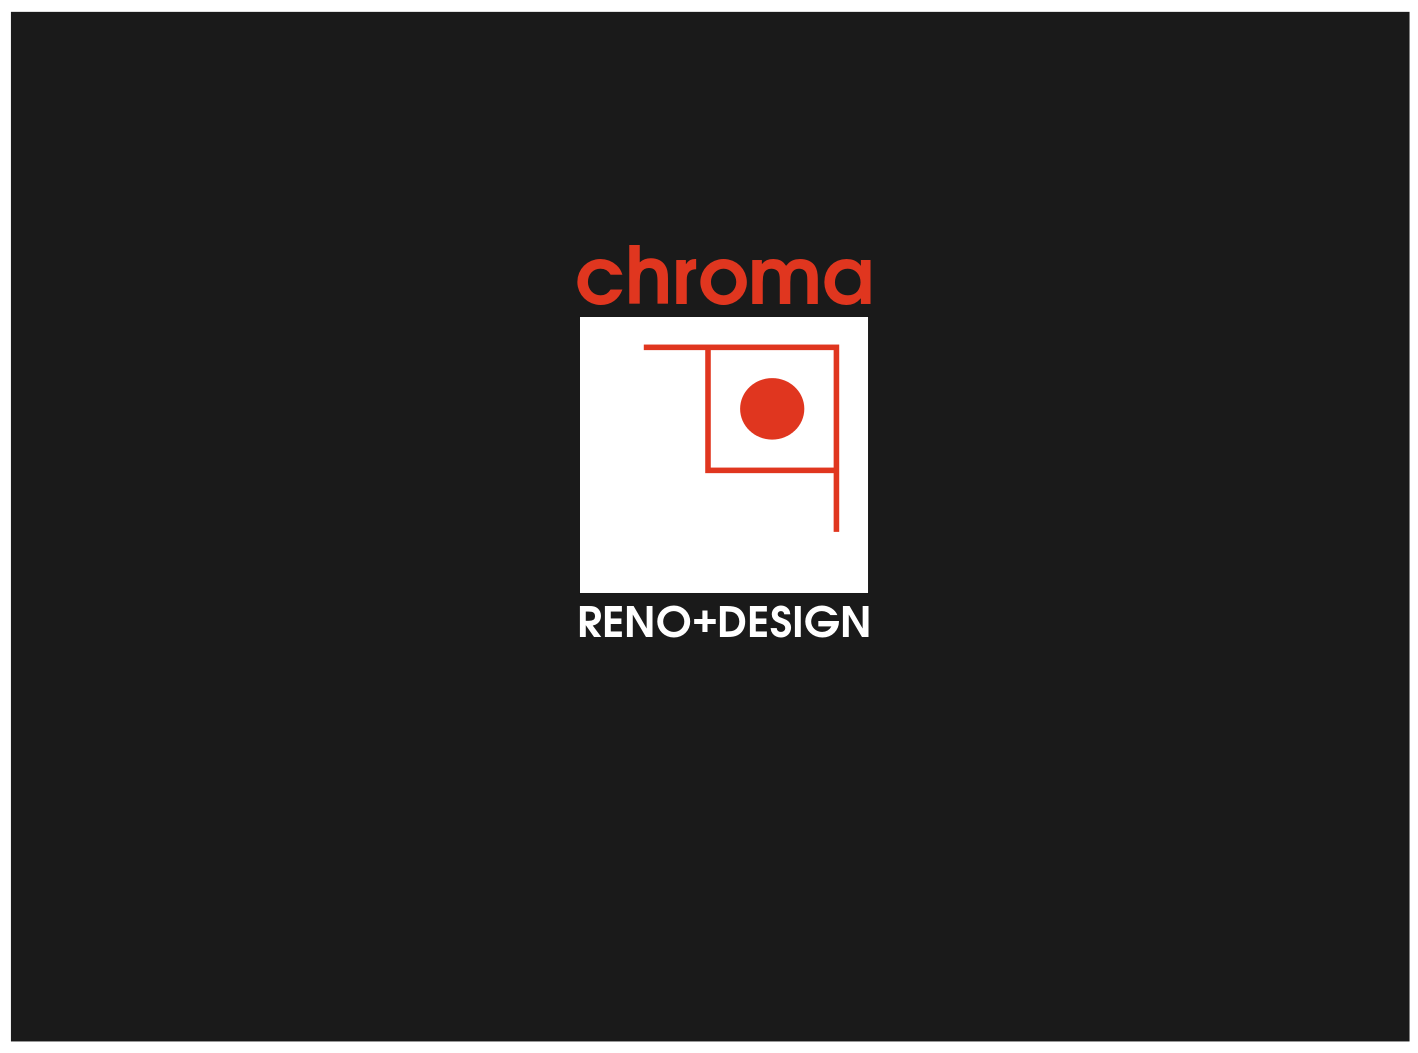 Logo Design by JaroslavProcka - Entry No. 216 in the Logo Design Contest Inspiring Logo Design for Chroma Reno+Design.